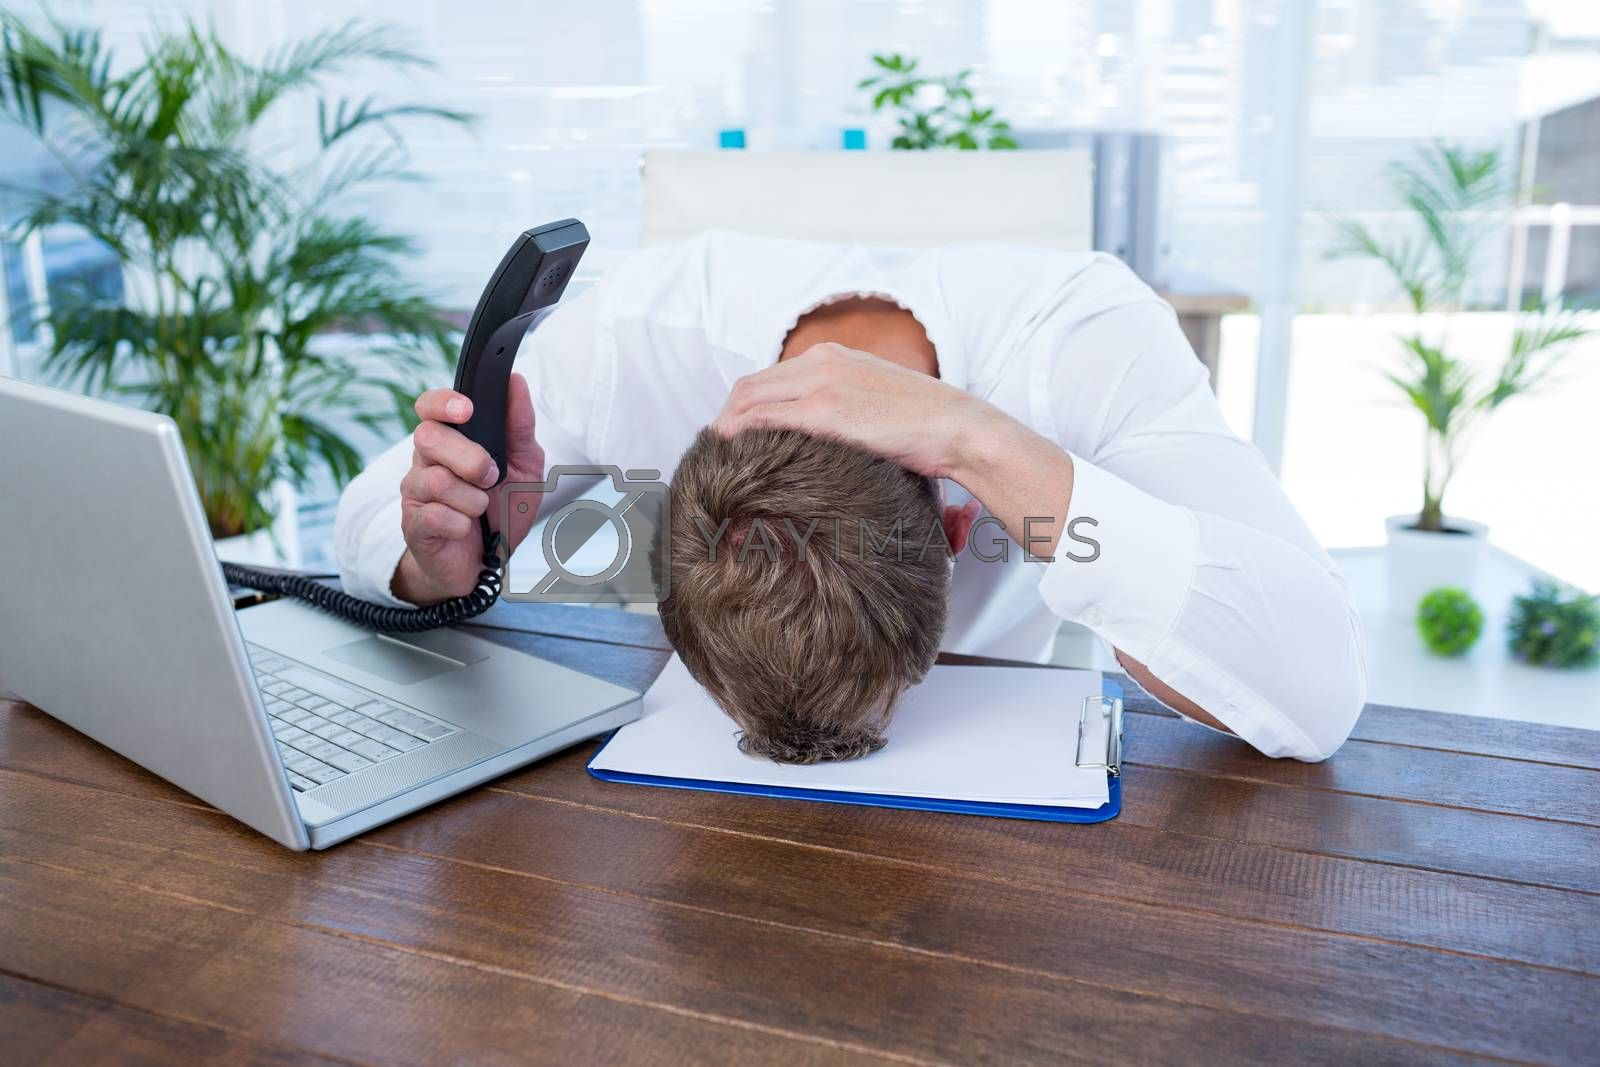 Royalty free image of Irritated businessman holding a land line phone by Wavebreakmedia